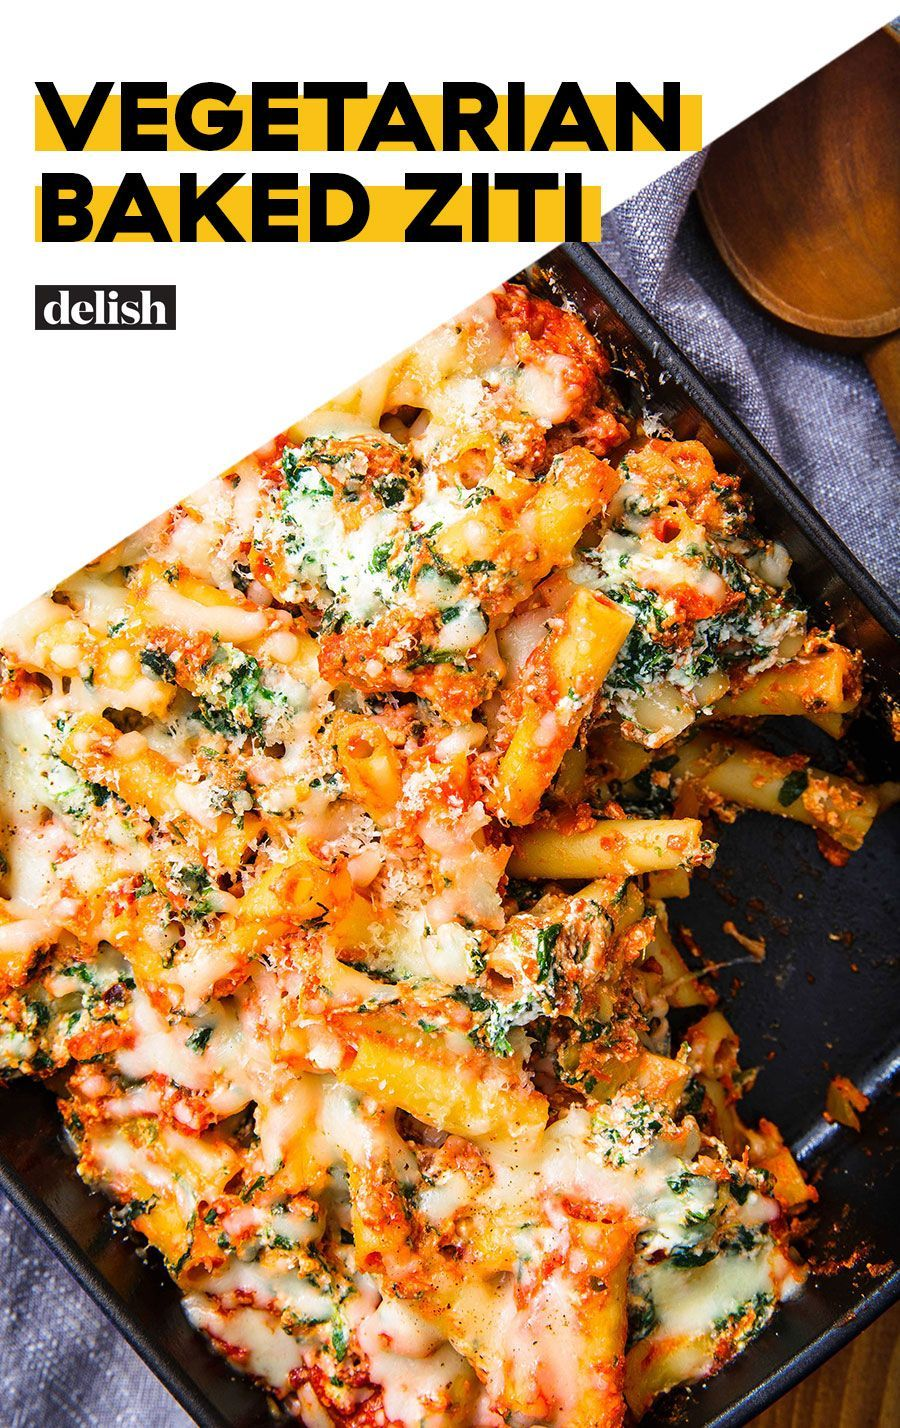 Baked Ziti This vegetarian baked ziti is perfect for a crowd. Get the recipe from This vegetarian baked ziti is perfect for a crowd. Get the recipe from